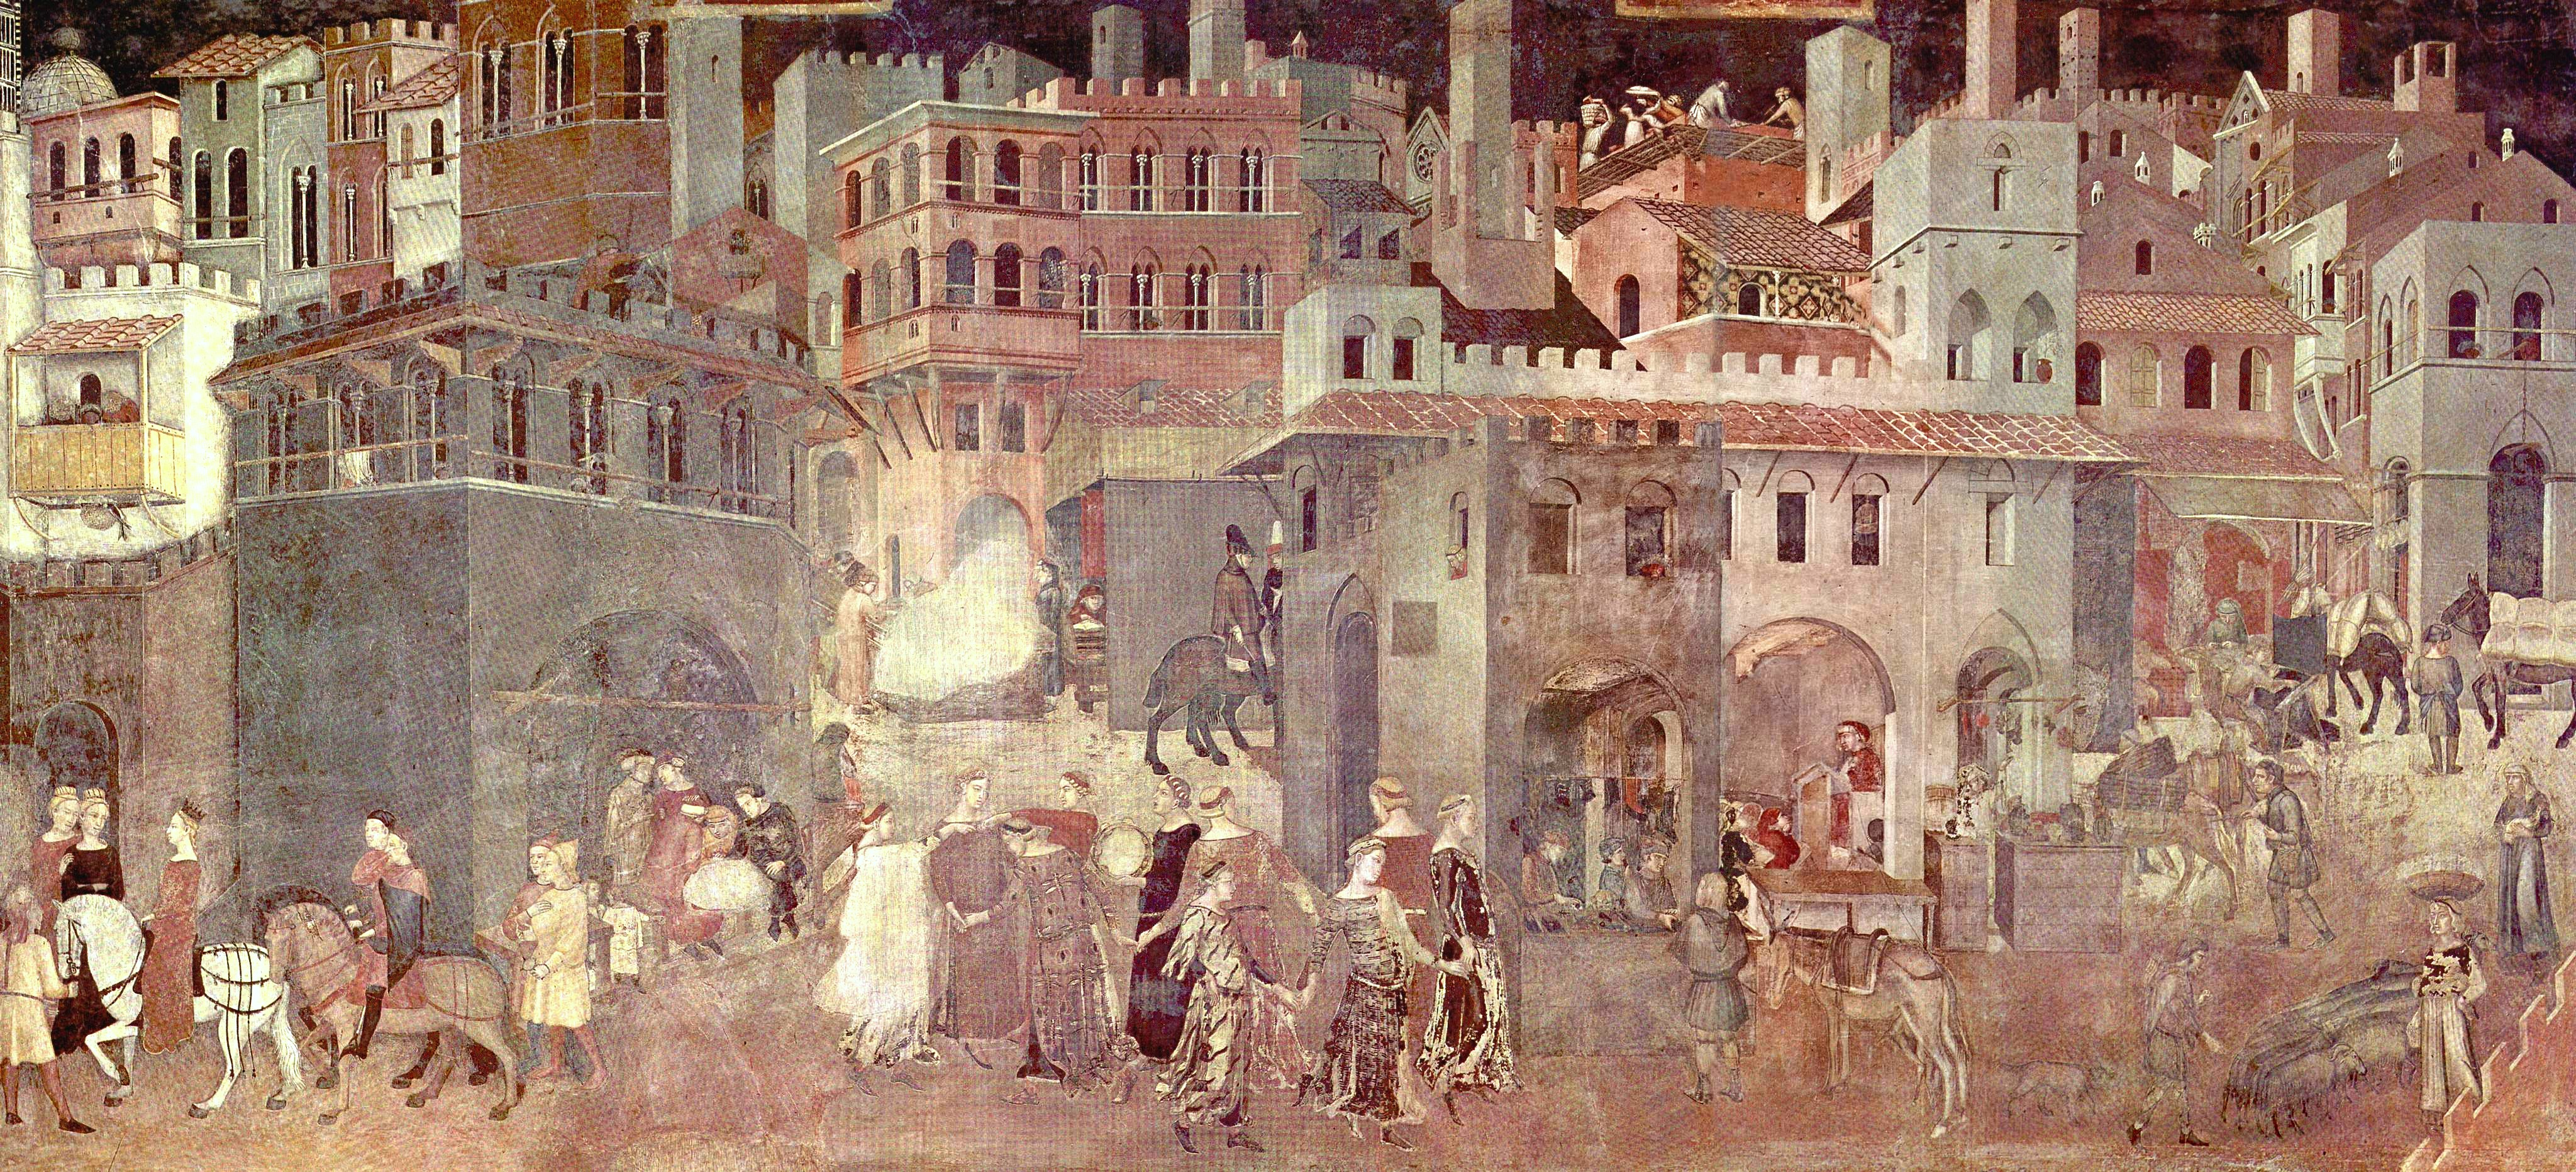 Ambrogio Lorenzetti, The Allegory of Good Government, Palazzo Publico, Siena.